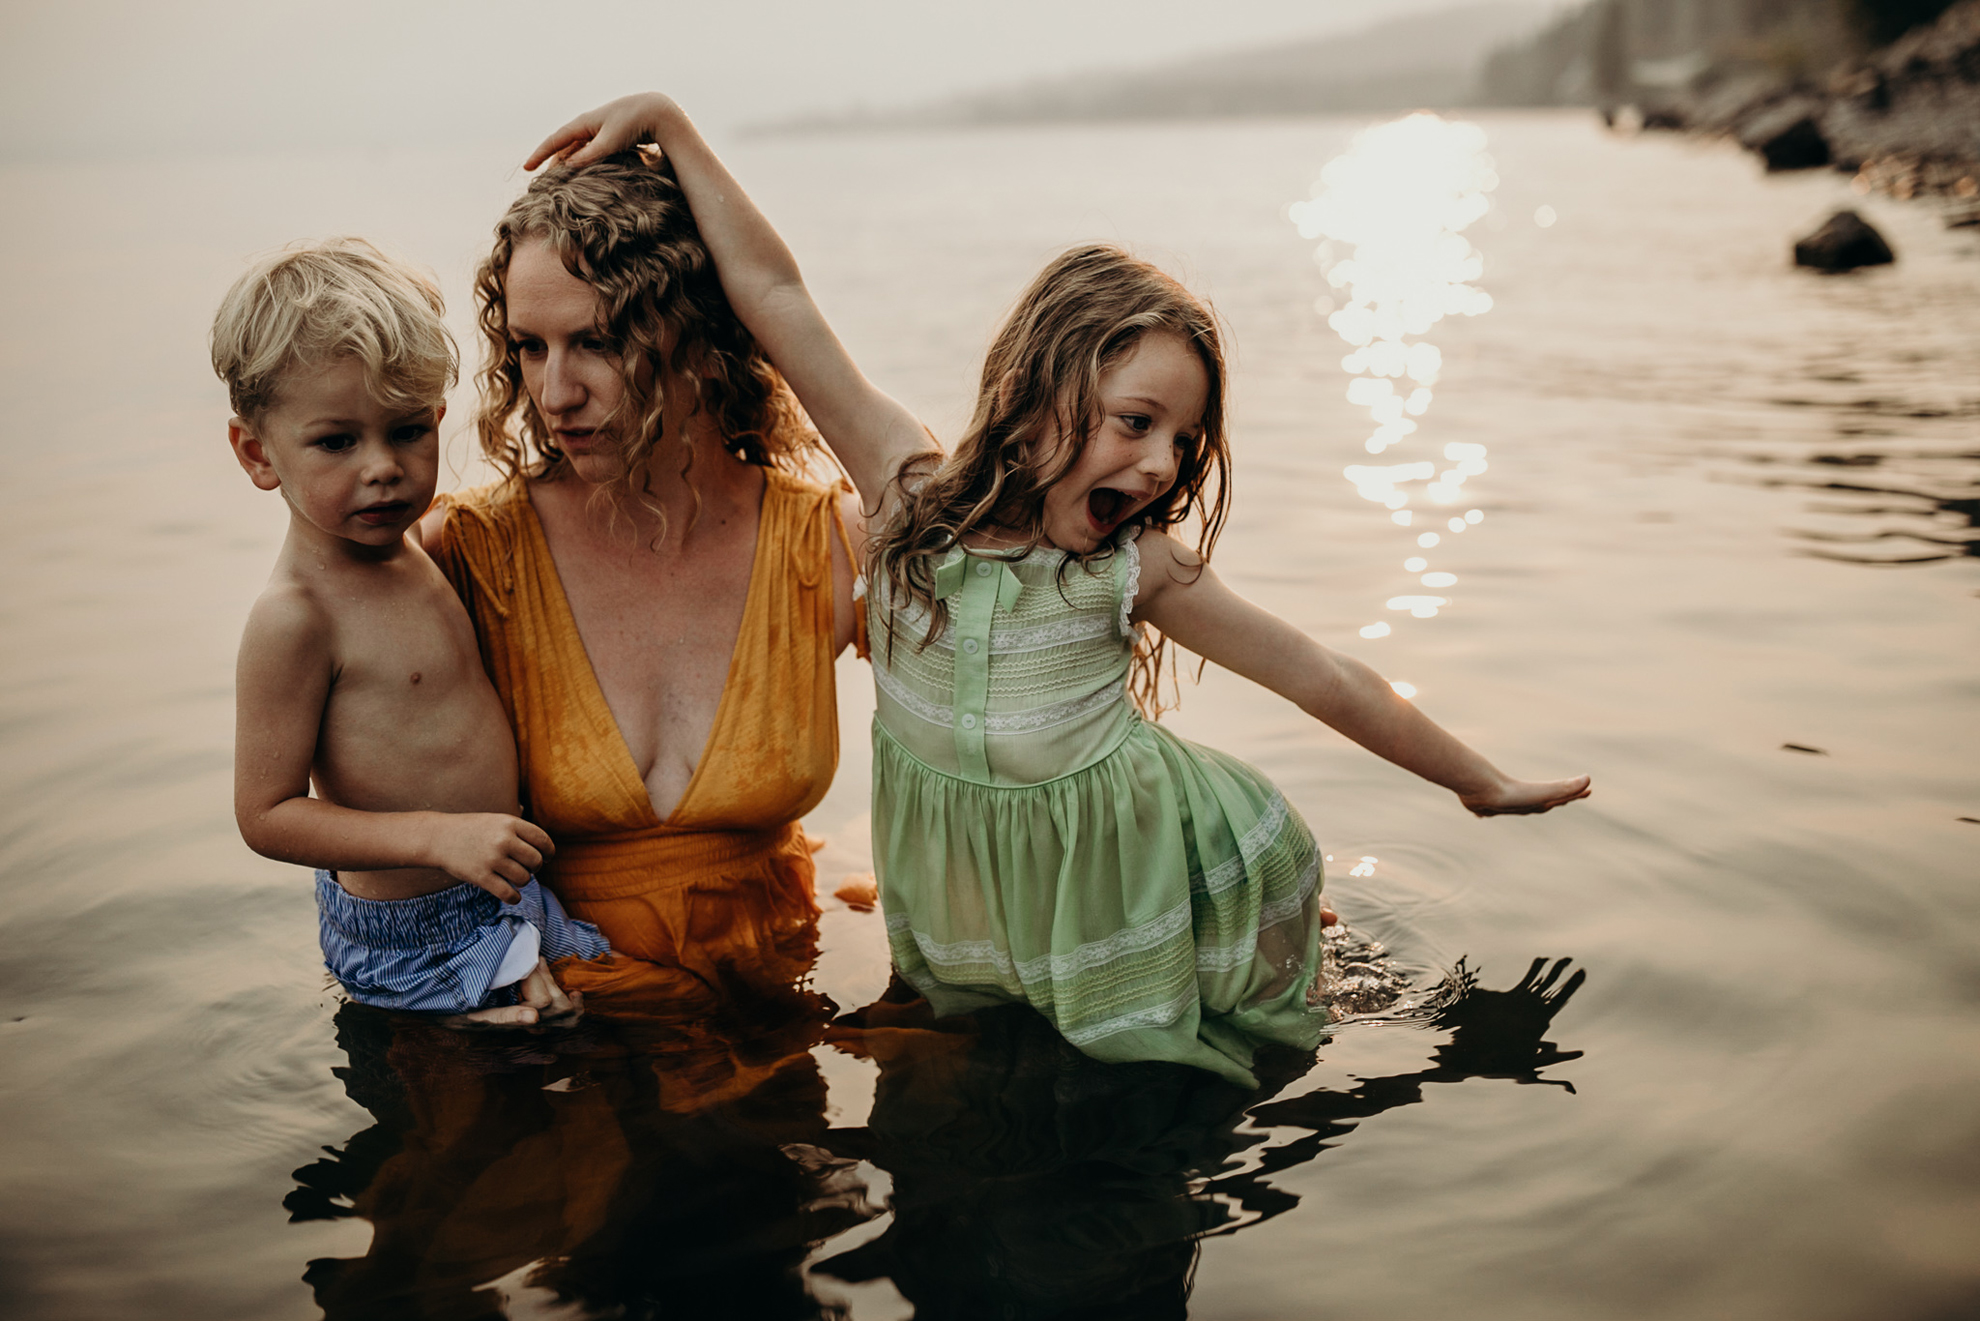 Salmon Arm Photography | ©The Paper Deer Photography | paperdeerphoto.com